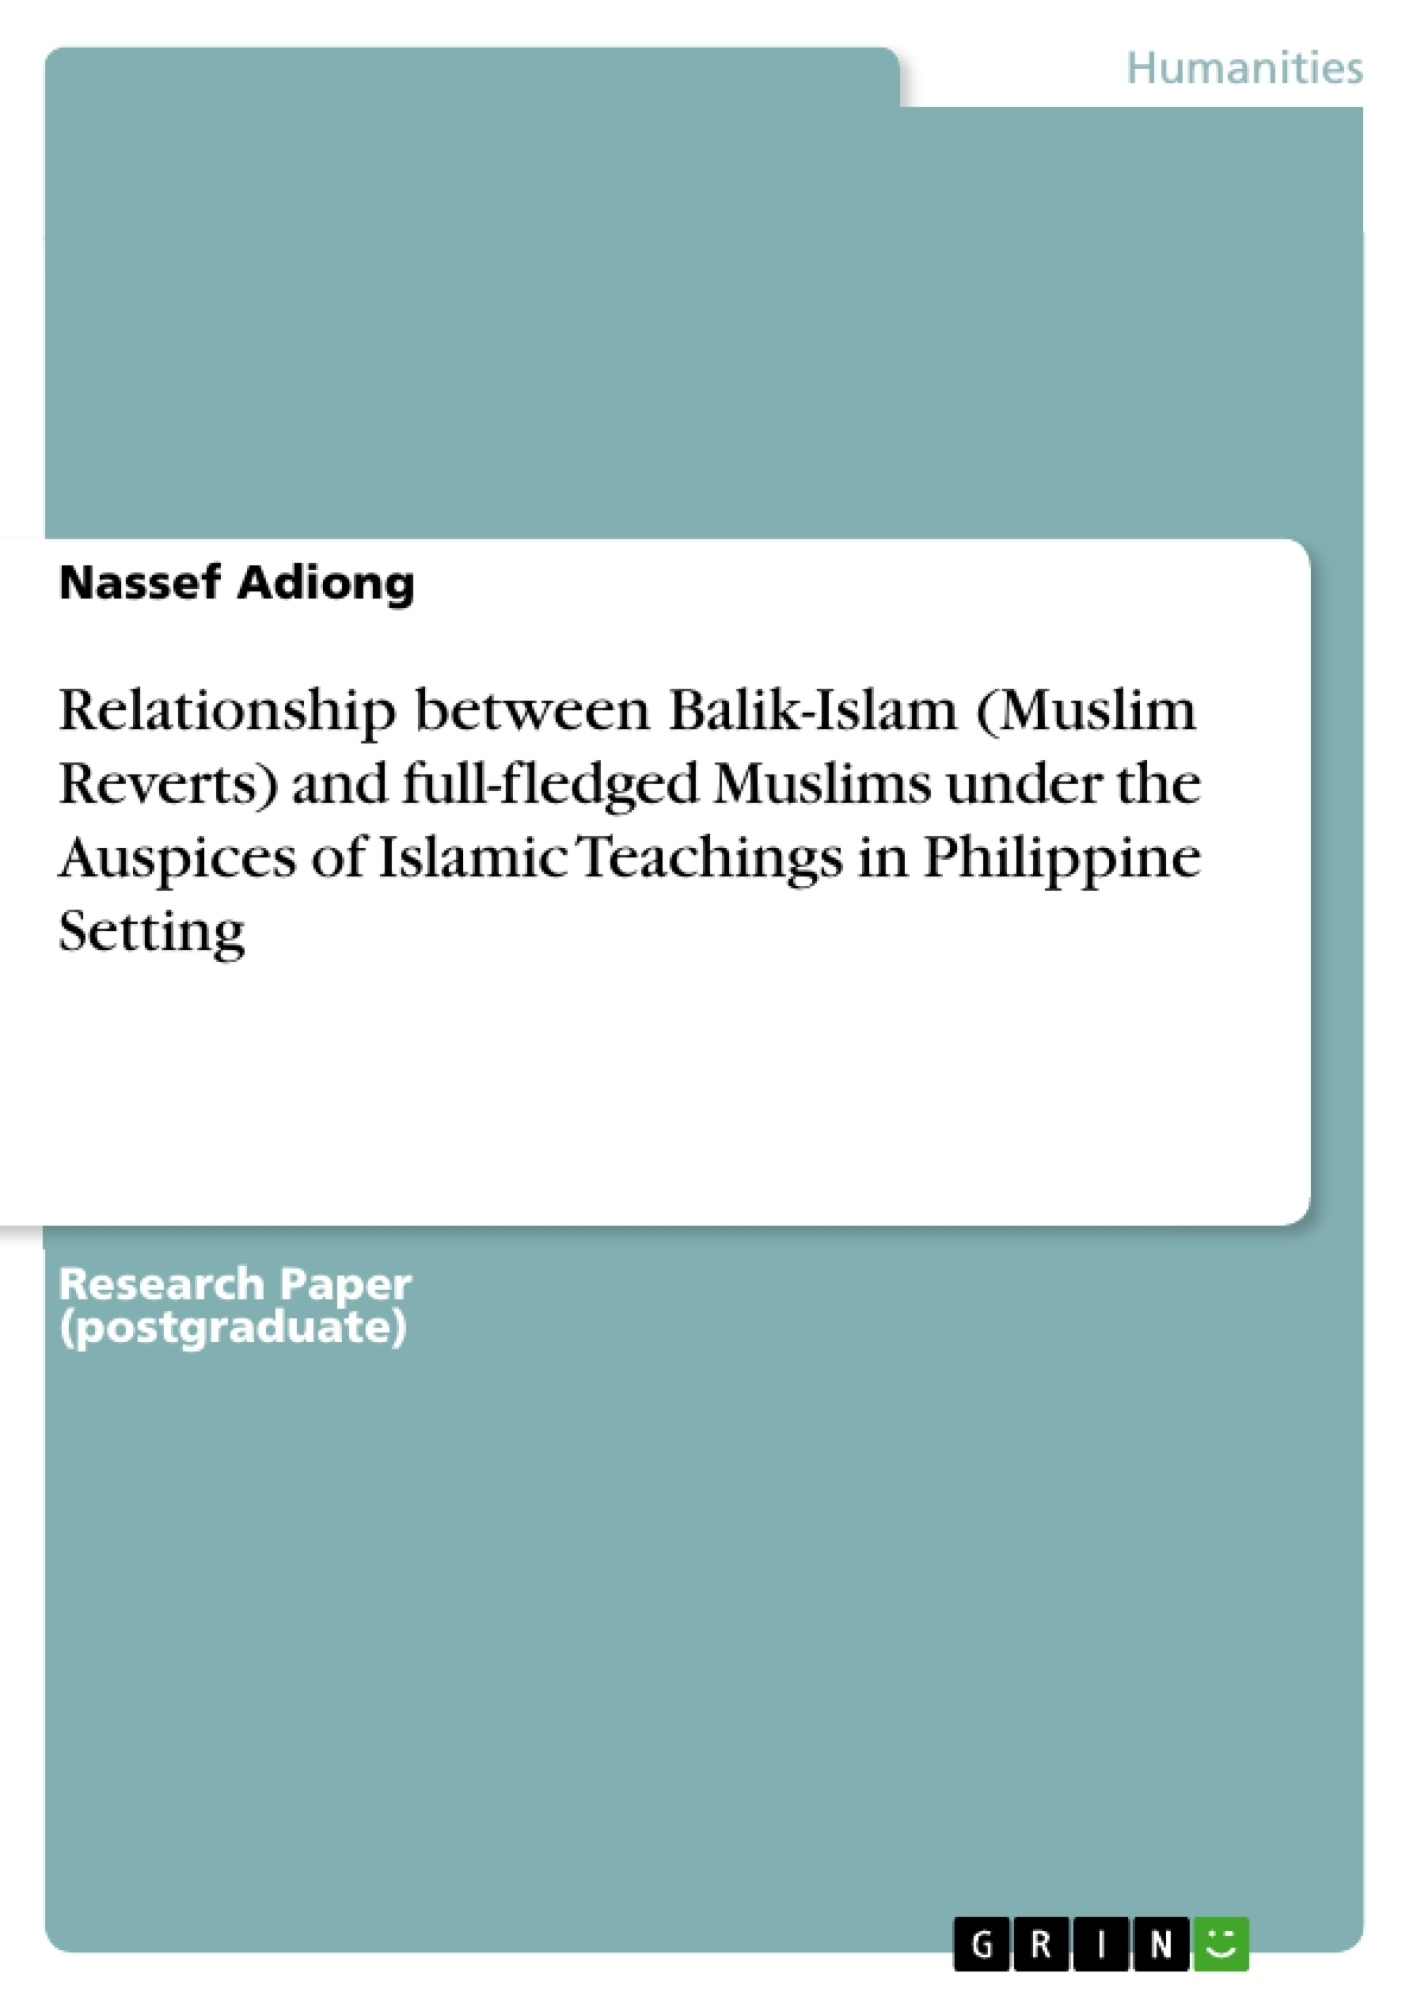 Title: Relationship between Balik-Islam (Muslim Reverts) and full-fledged Muslims under the Auspices of Islamic Teachings in Philippine Setting